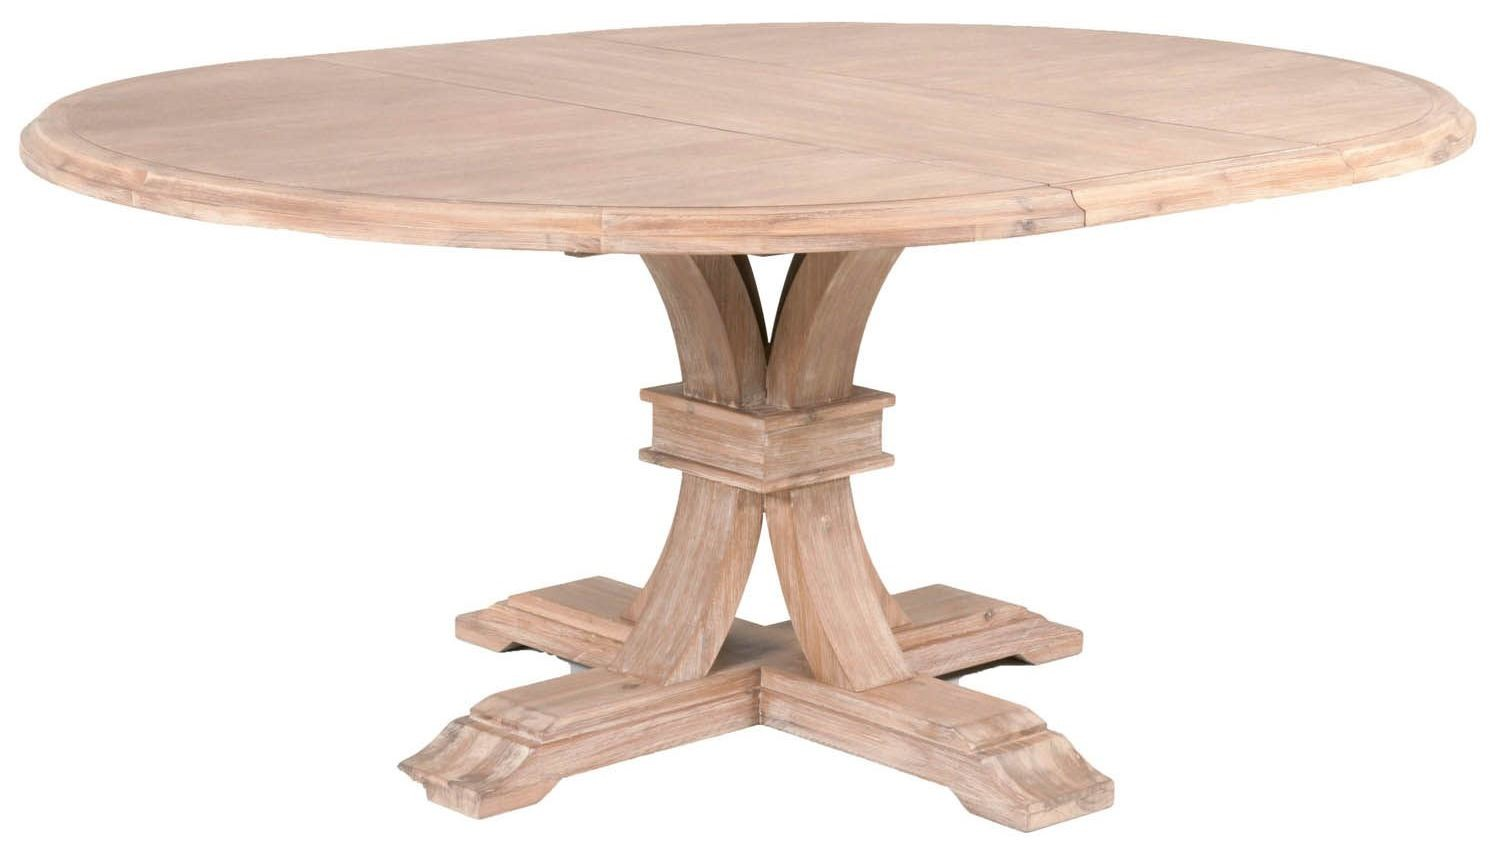 Traditions stone wash devon round extendable dining table for Round extension dining table